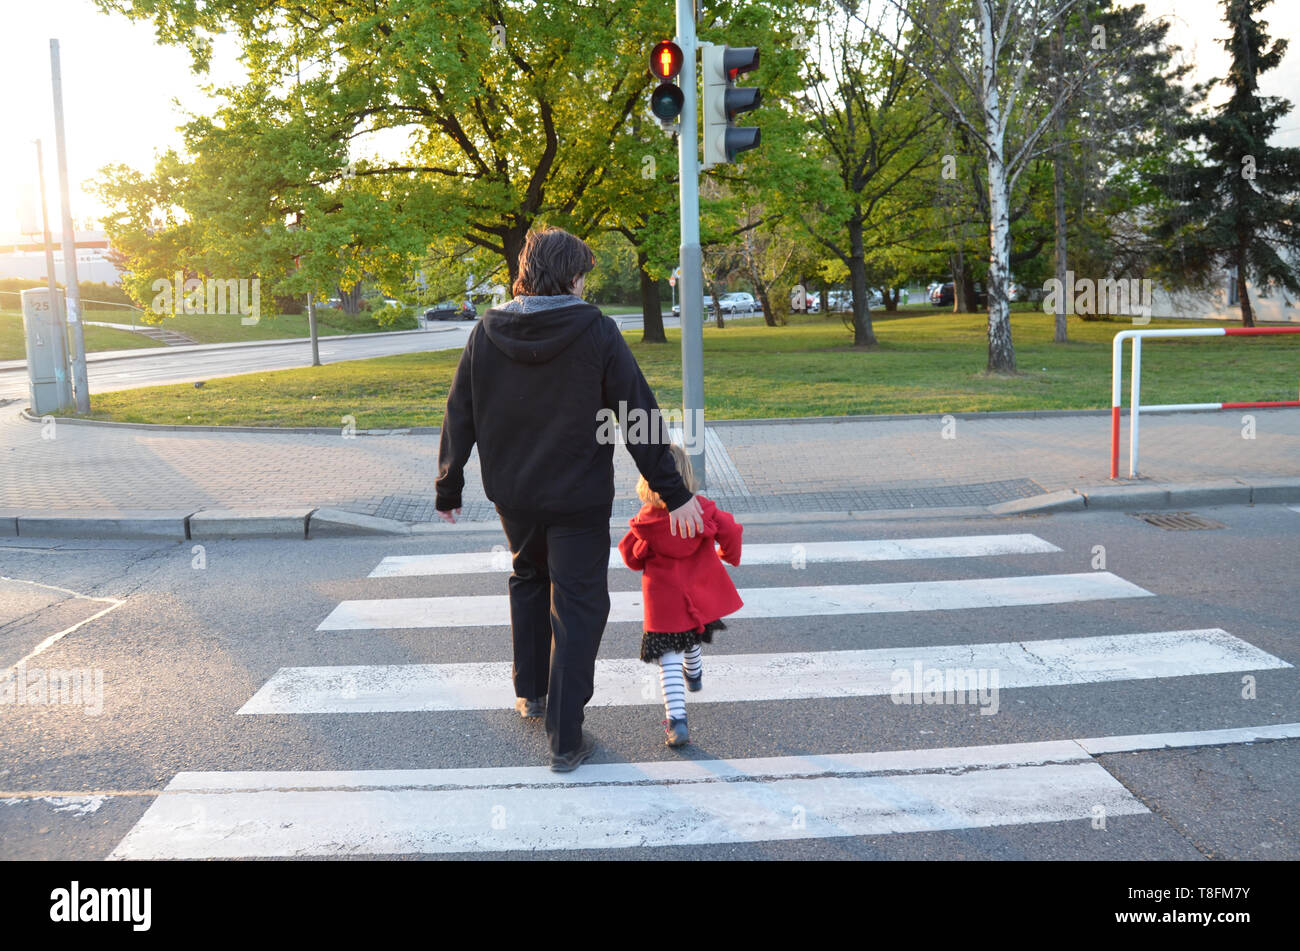 A man and a small child on a zebra crossing trespassing by crossing  the street on red flashing lights. Father is wearing black clothes, the girl has  - Stock Image